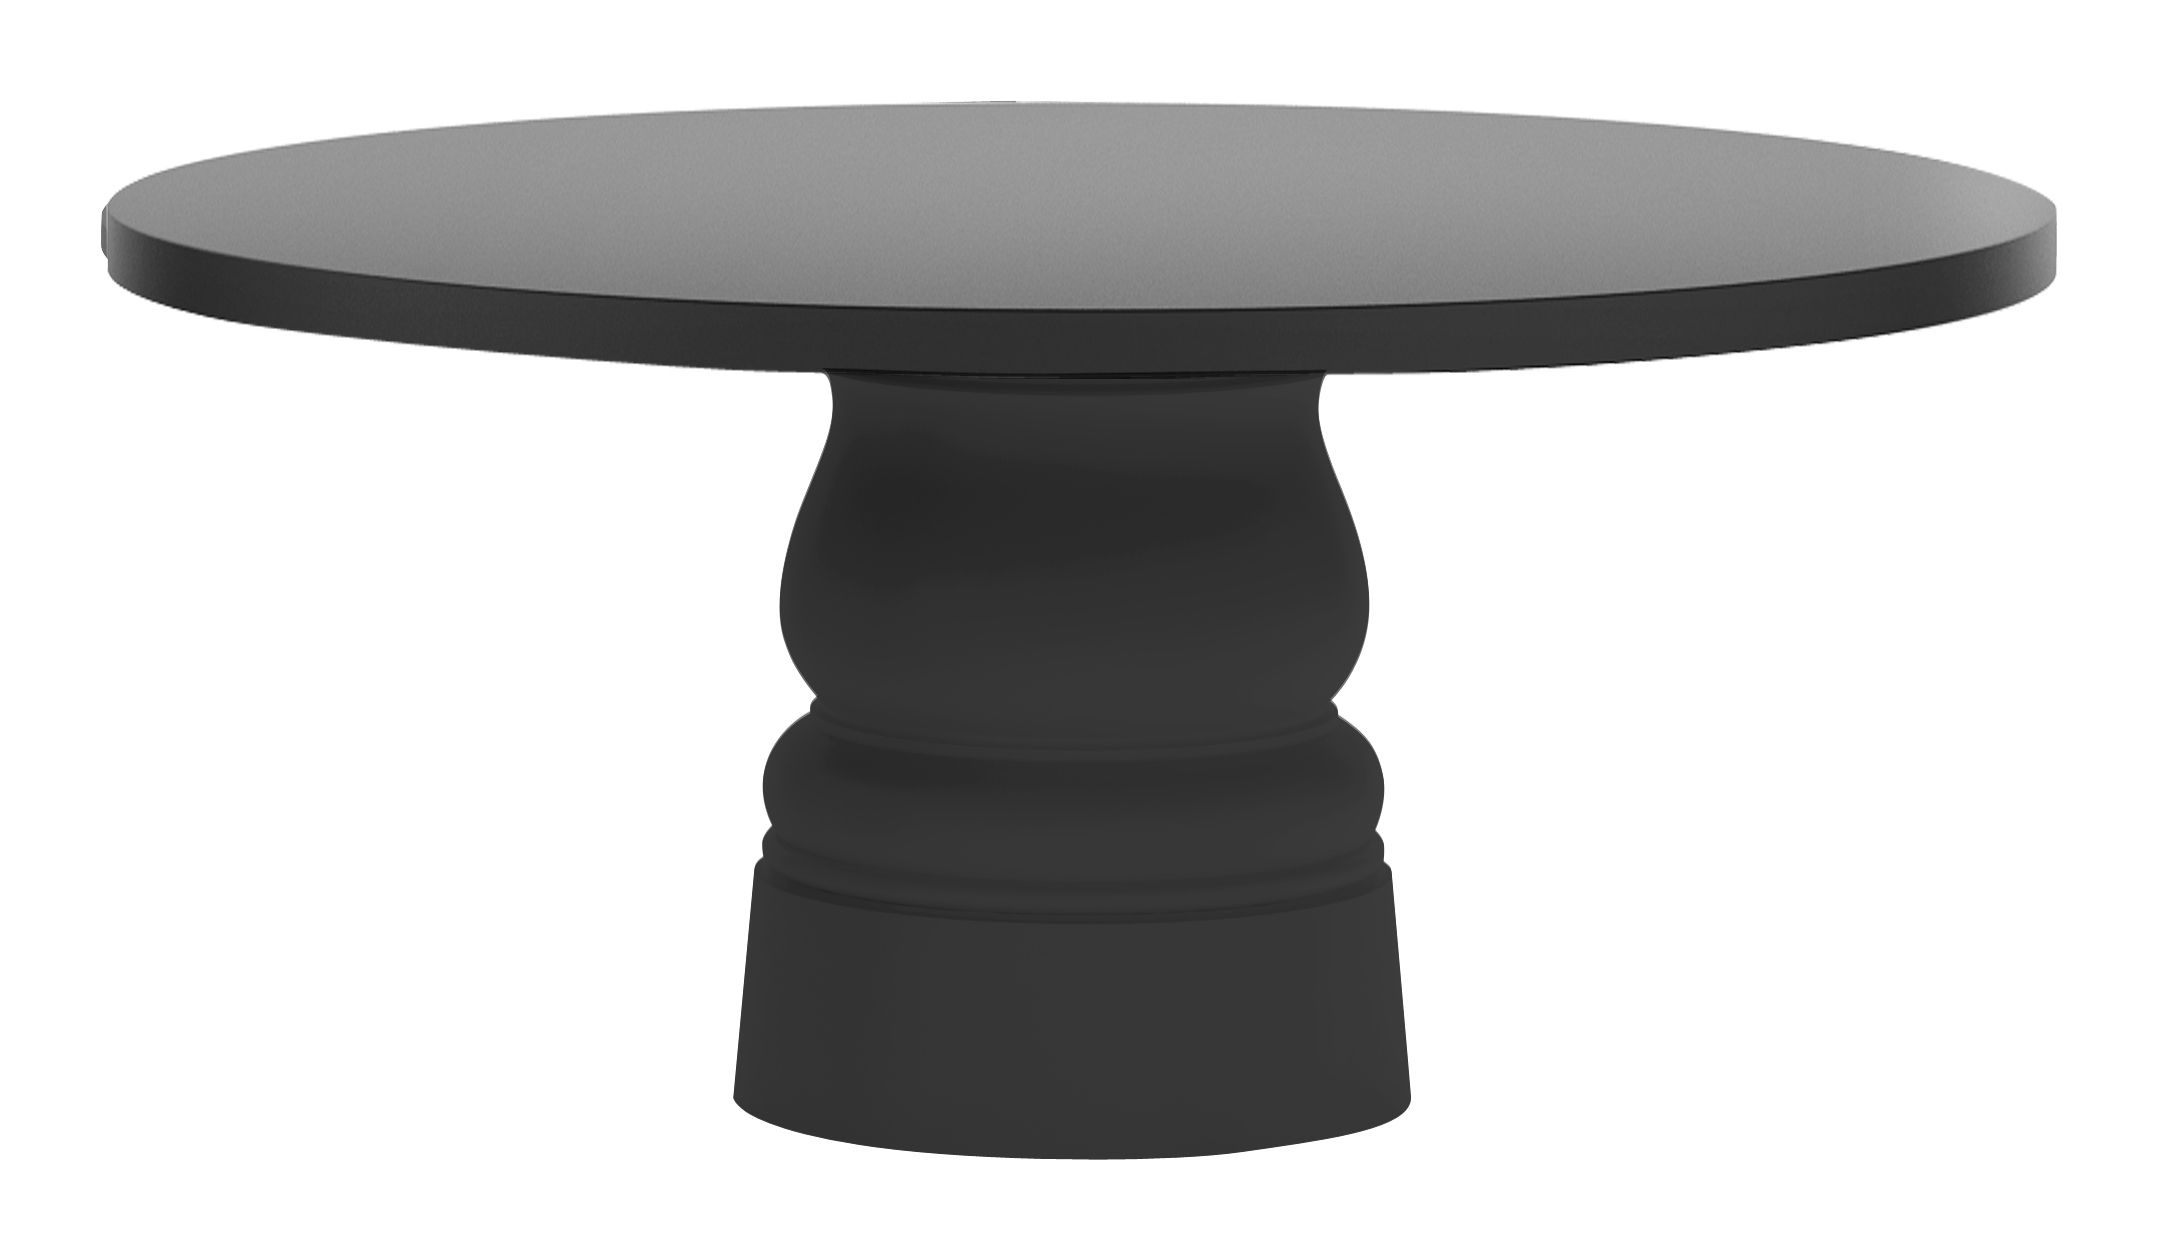 Outdoor - Garden Tables - / Pied pour table Container New Antique Table accessory - Ø 56 x H 71 cm - For top Ø 160 cm by Moooi - H 71 cm x Ø 56 cm - Black - Polythene, Stainless steel